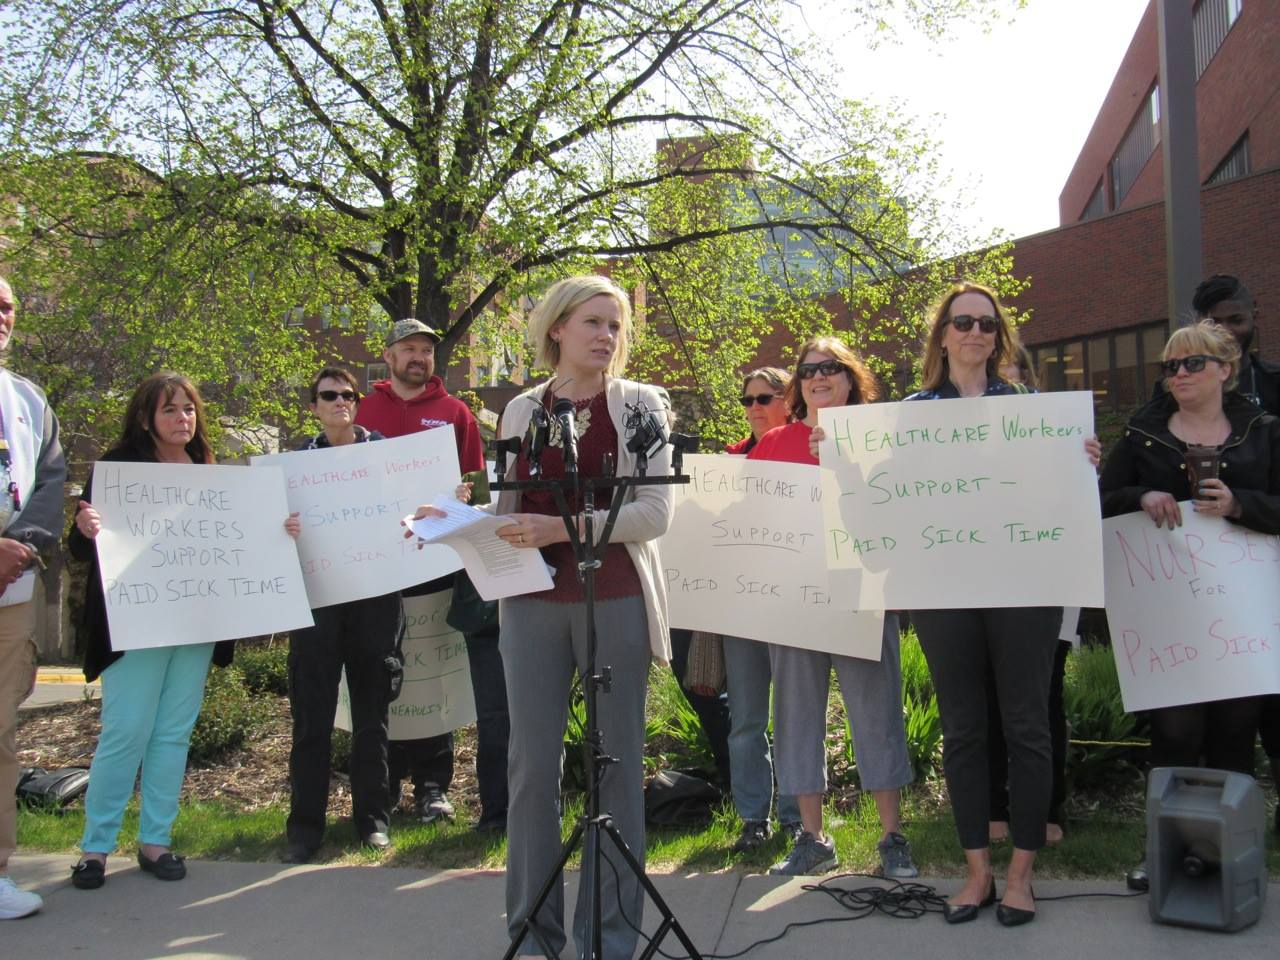 Flanked by nurses and healthcare workers, Chelsie Glaubitz Gabiou, president of the Minneapolis Regional Labor Federation, recounted her work as a member of the Workplace Partnership Group. Photo by Steve Share, Minneapolis Labor Review